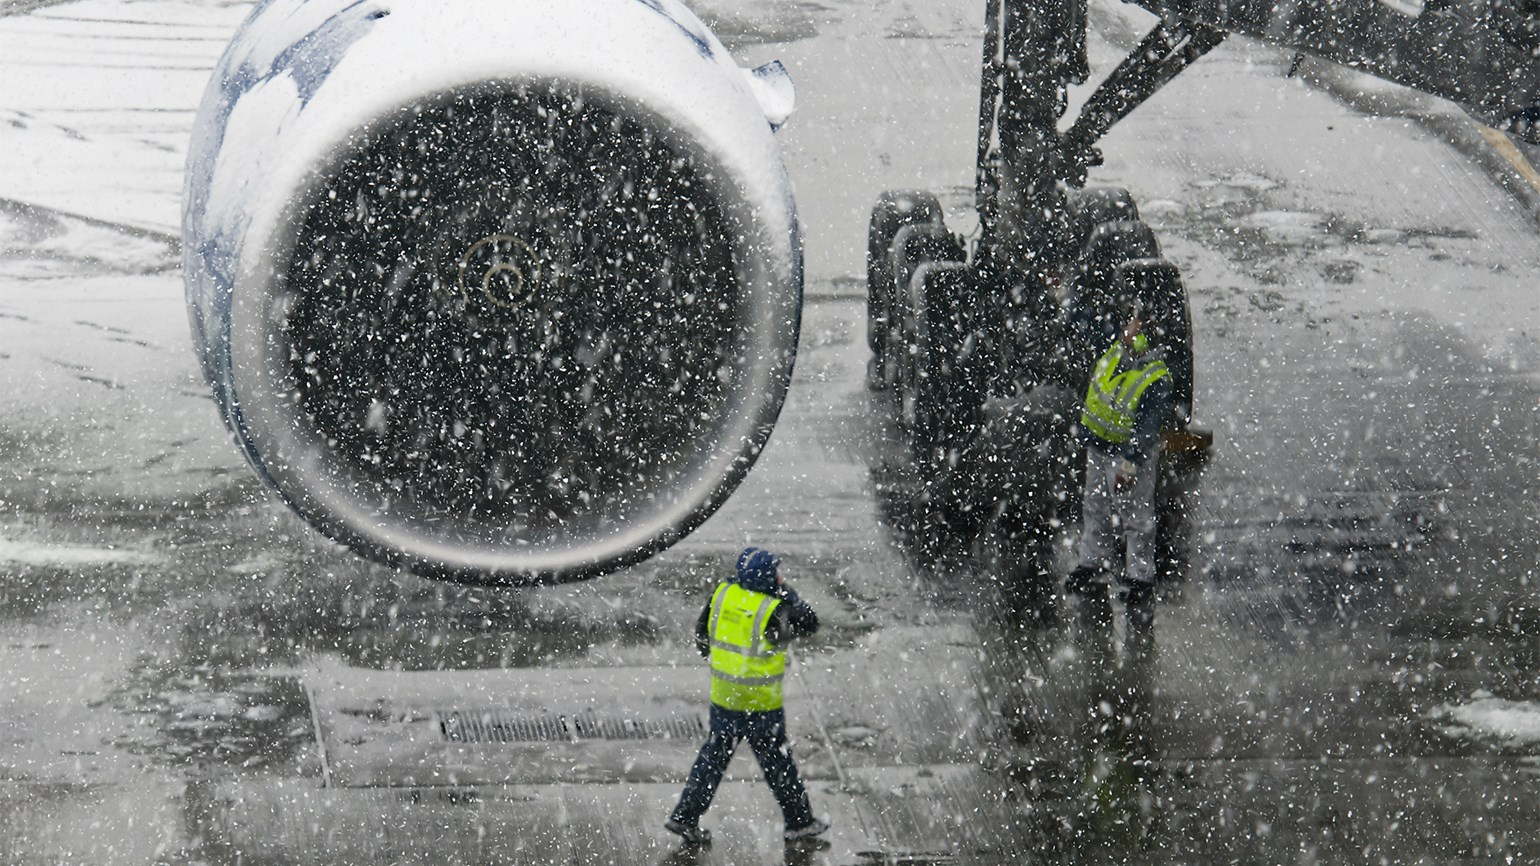 Early waivers for severe weather can benefit airlines and passengers